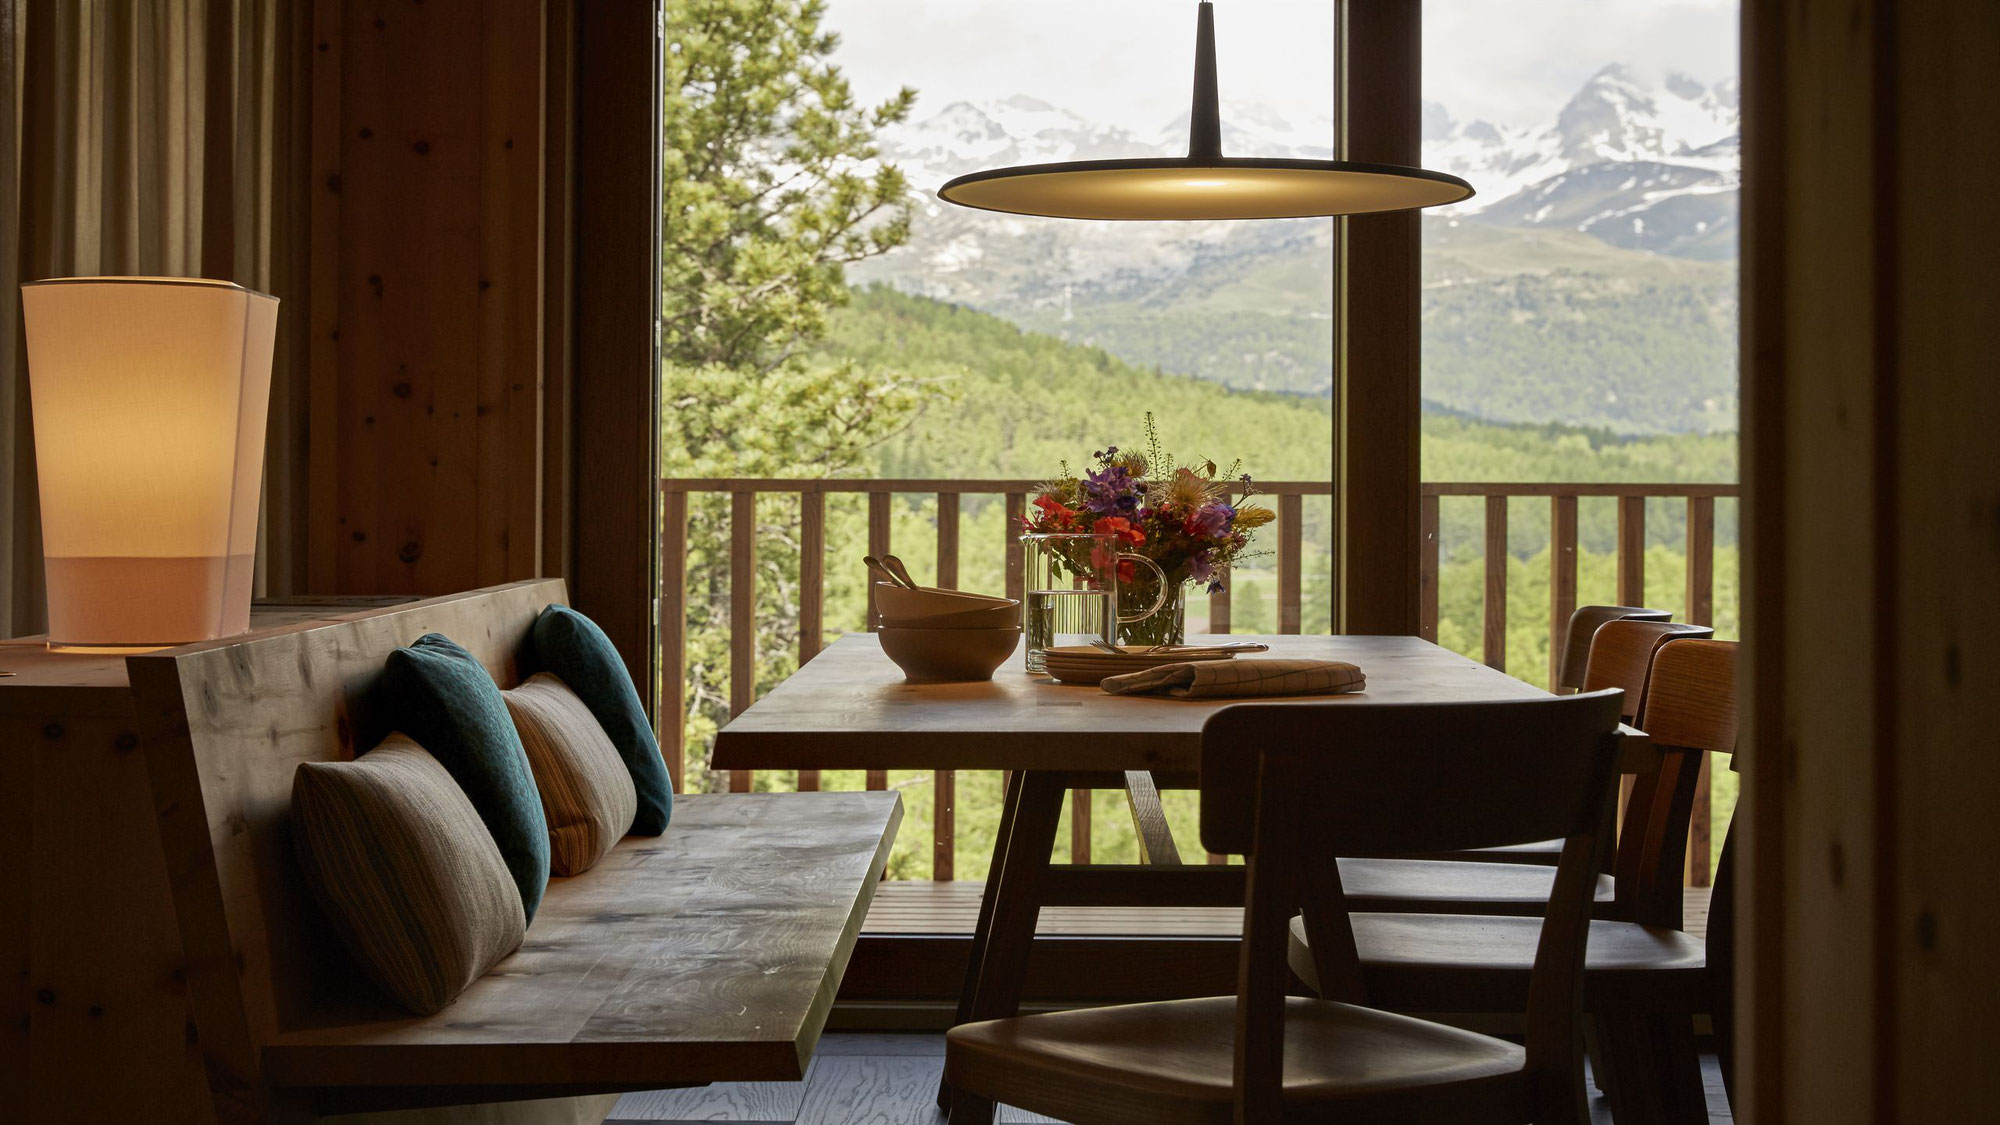 Alpine Lodging in the Swiss Engiadina Valley